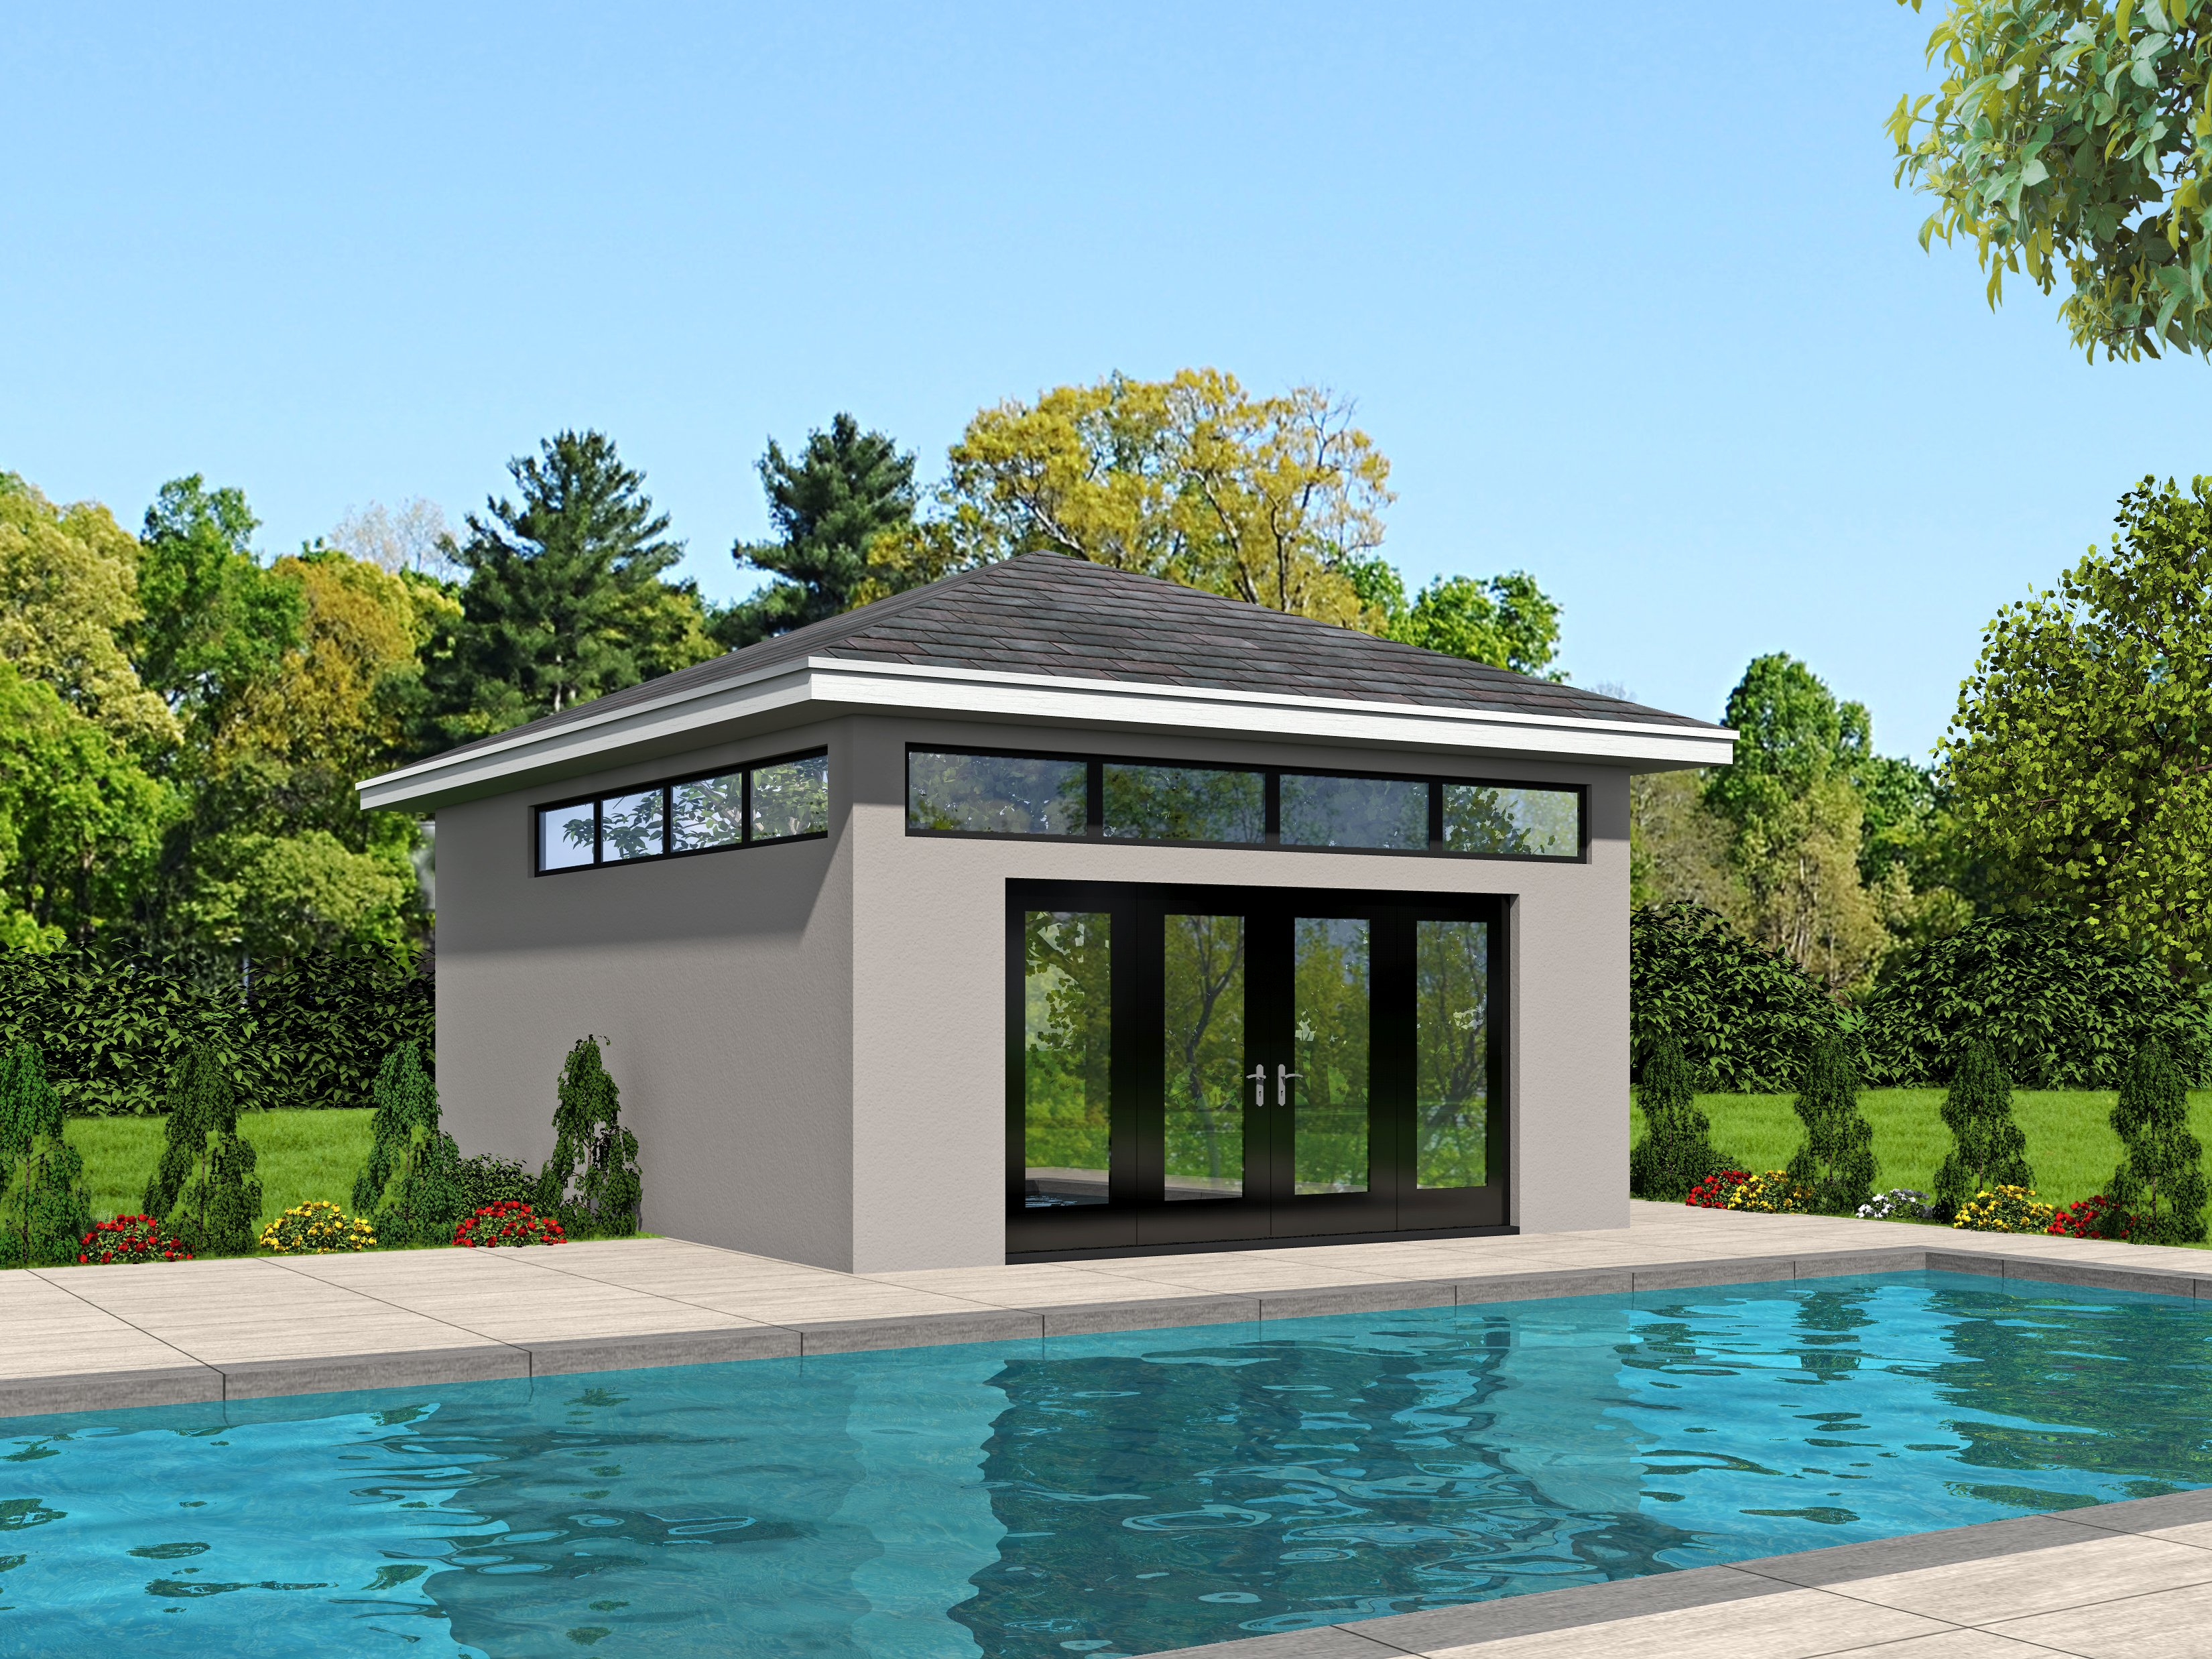 Pool house plans house plans plus for Pool design drawings